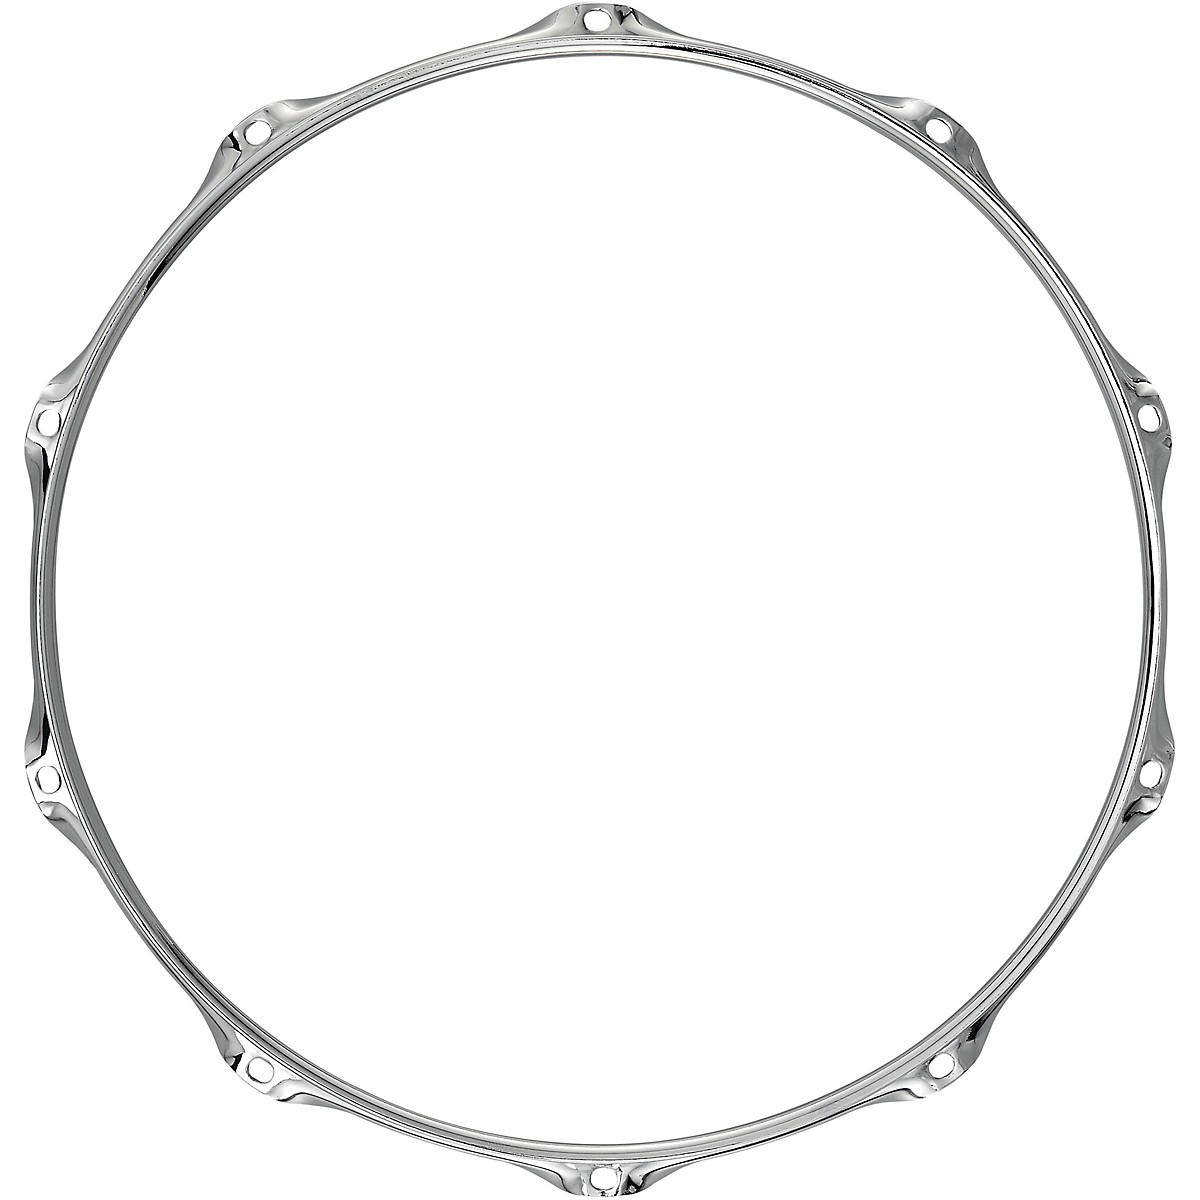 TAMA Ultimate Steel Mighty Hoop, Batter Side, 10 Holes